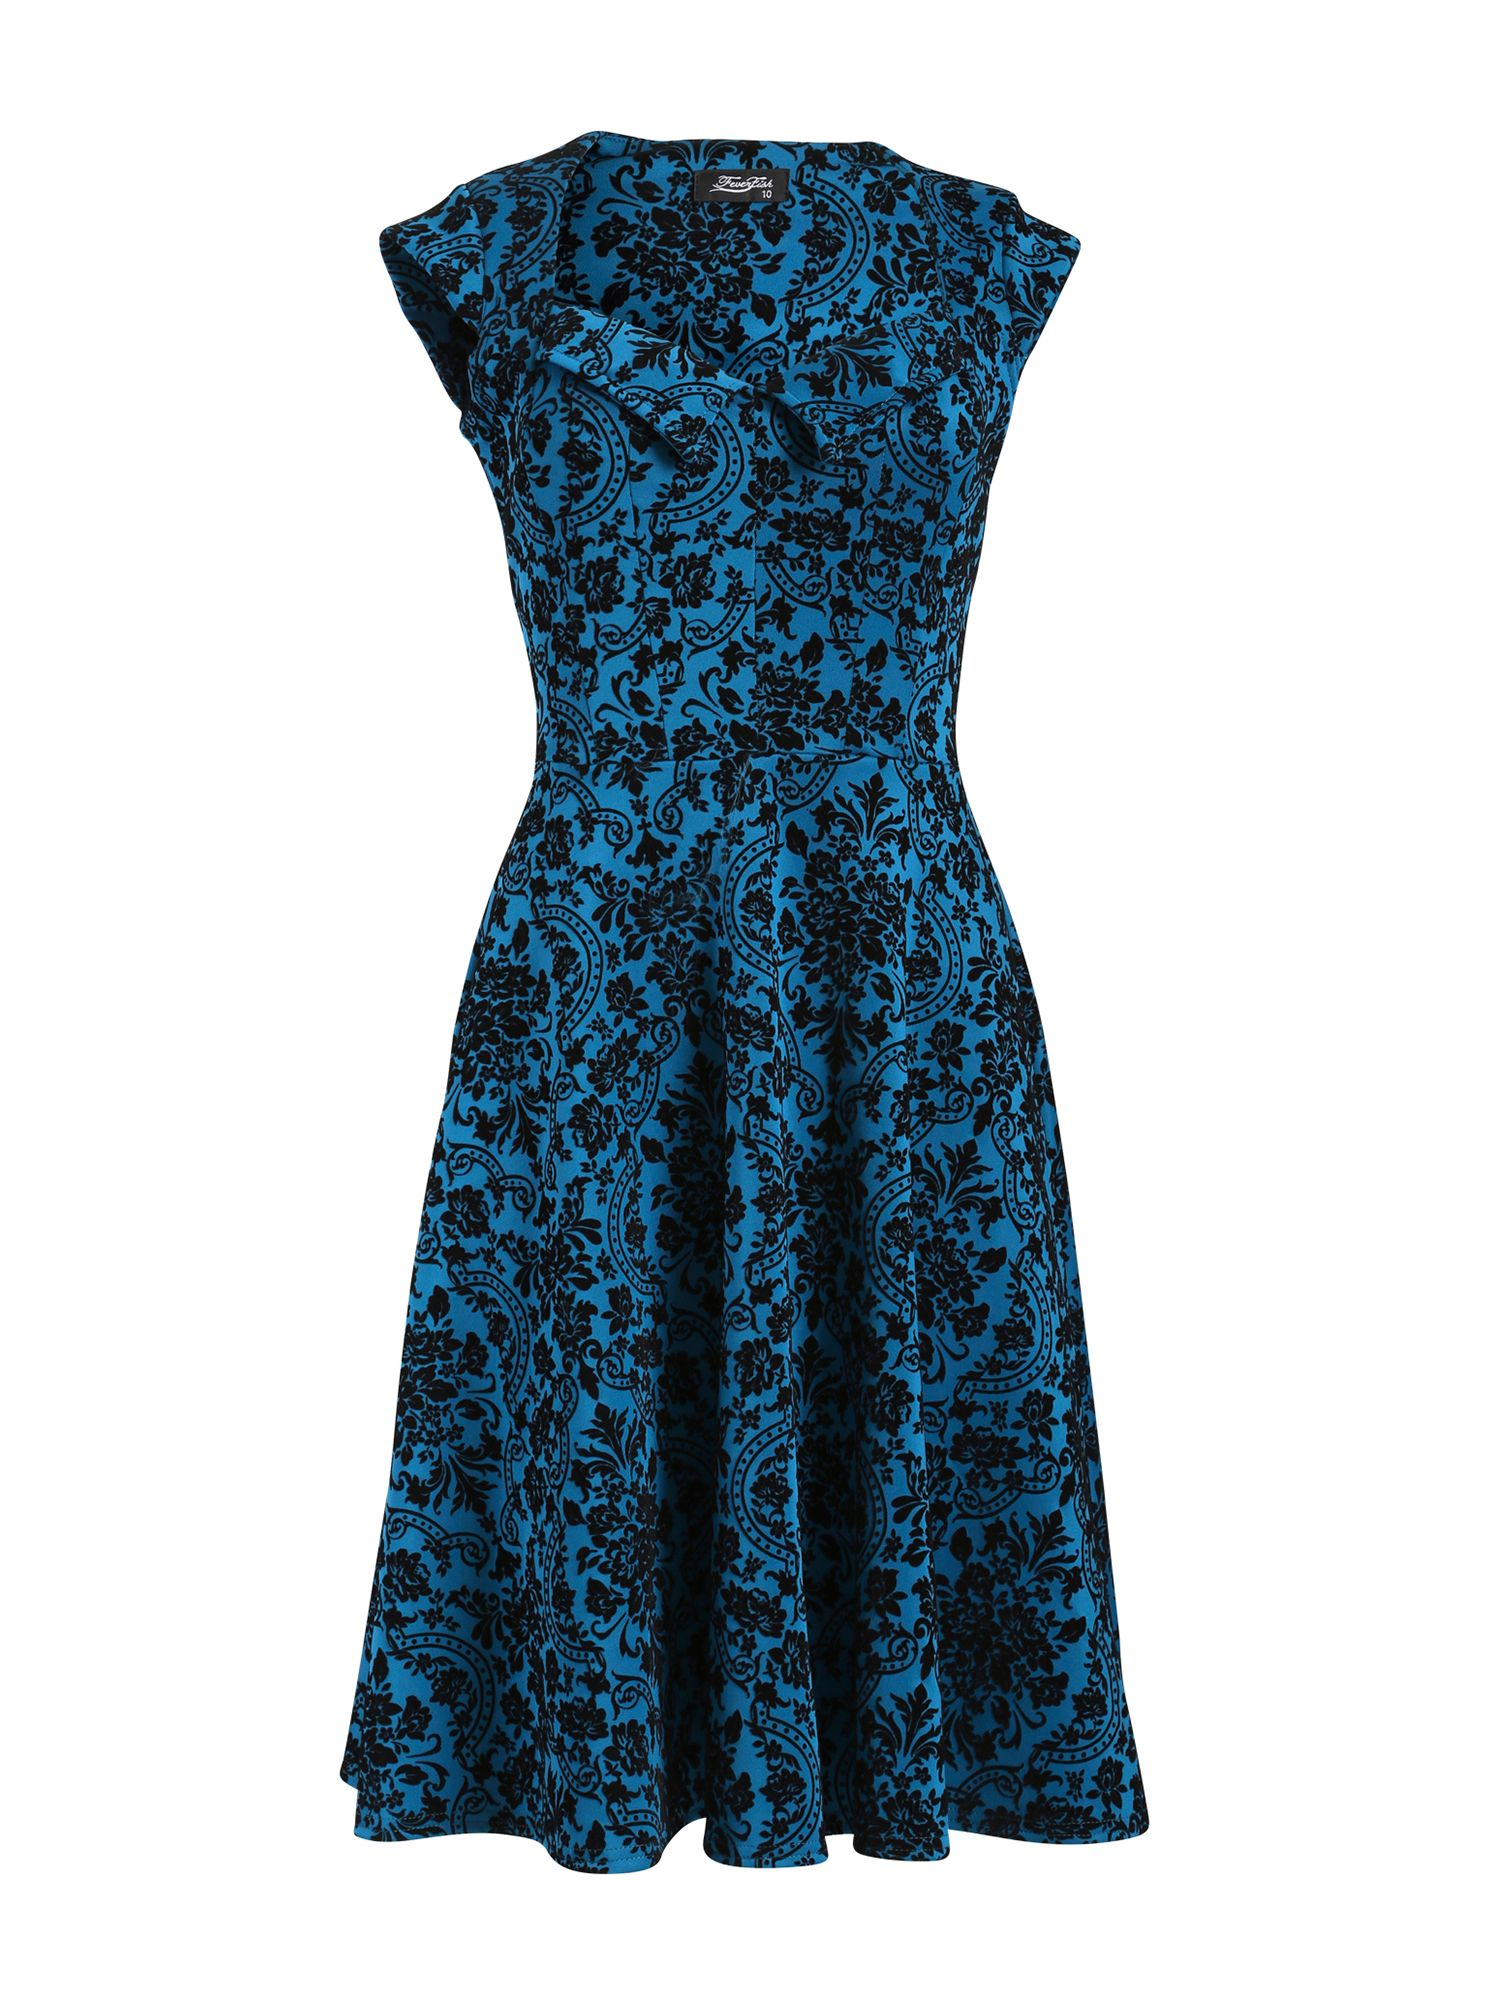 Shop 1940s inspired dresses uk for Quality classic house of fraser